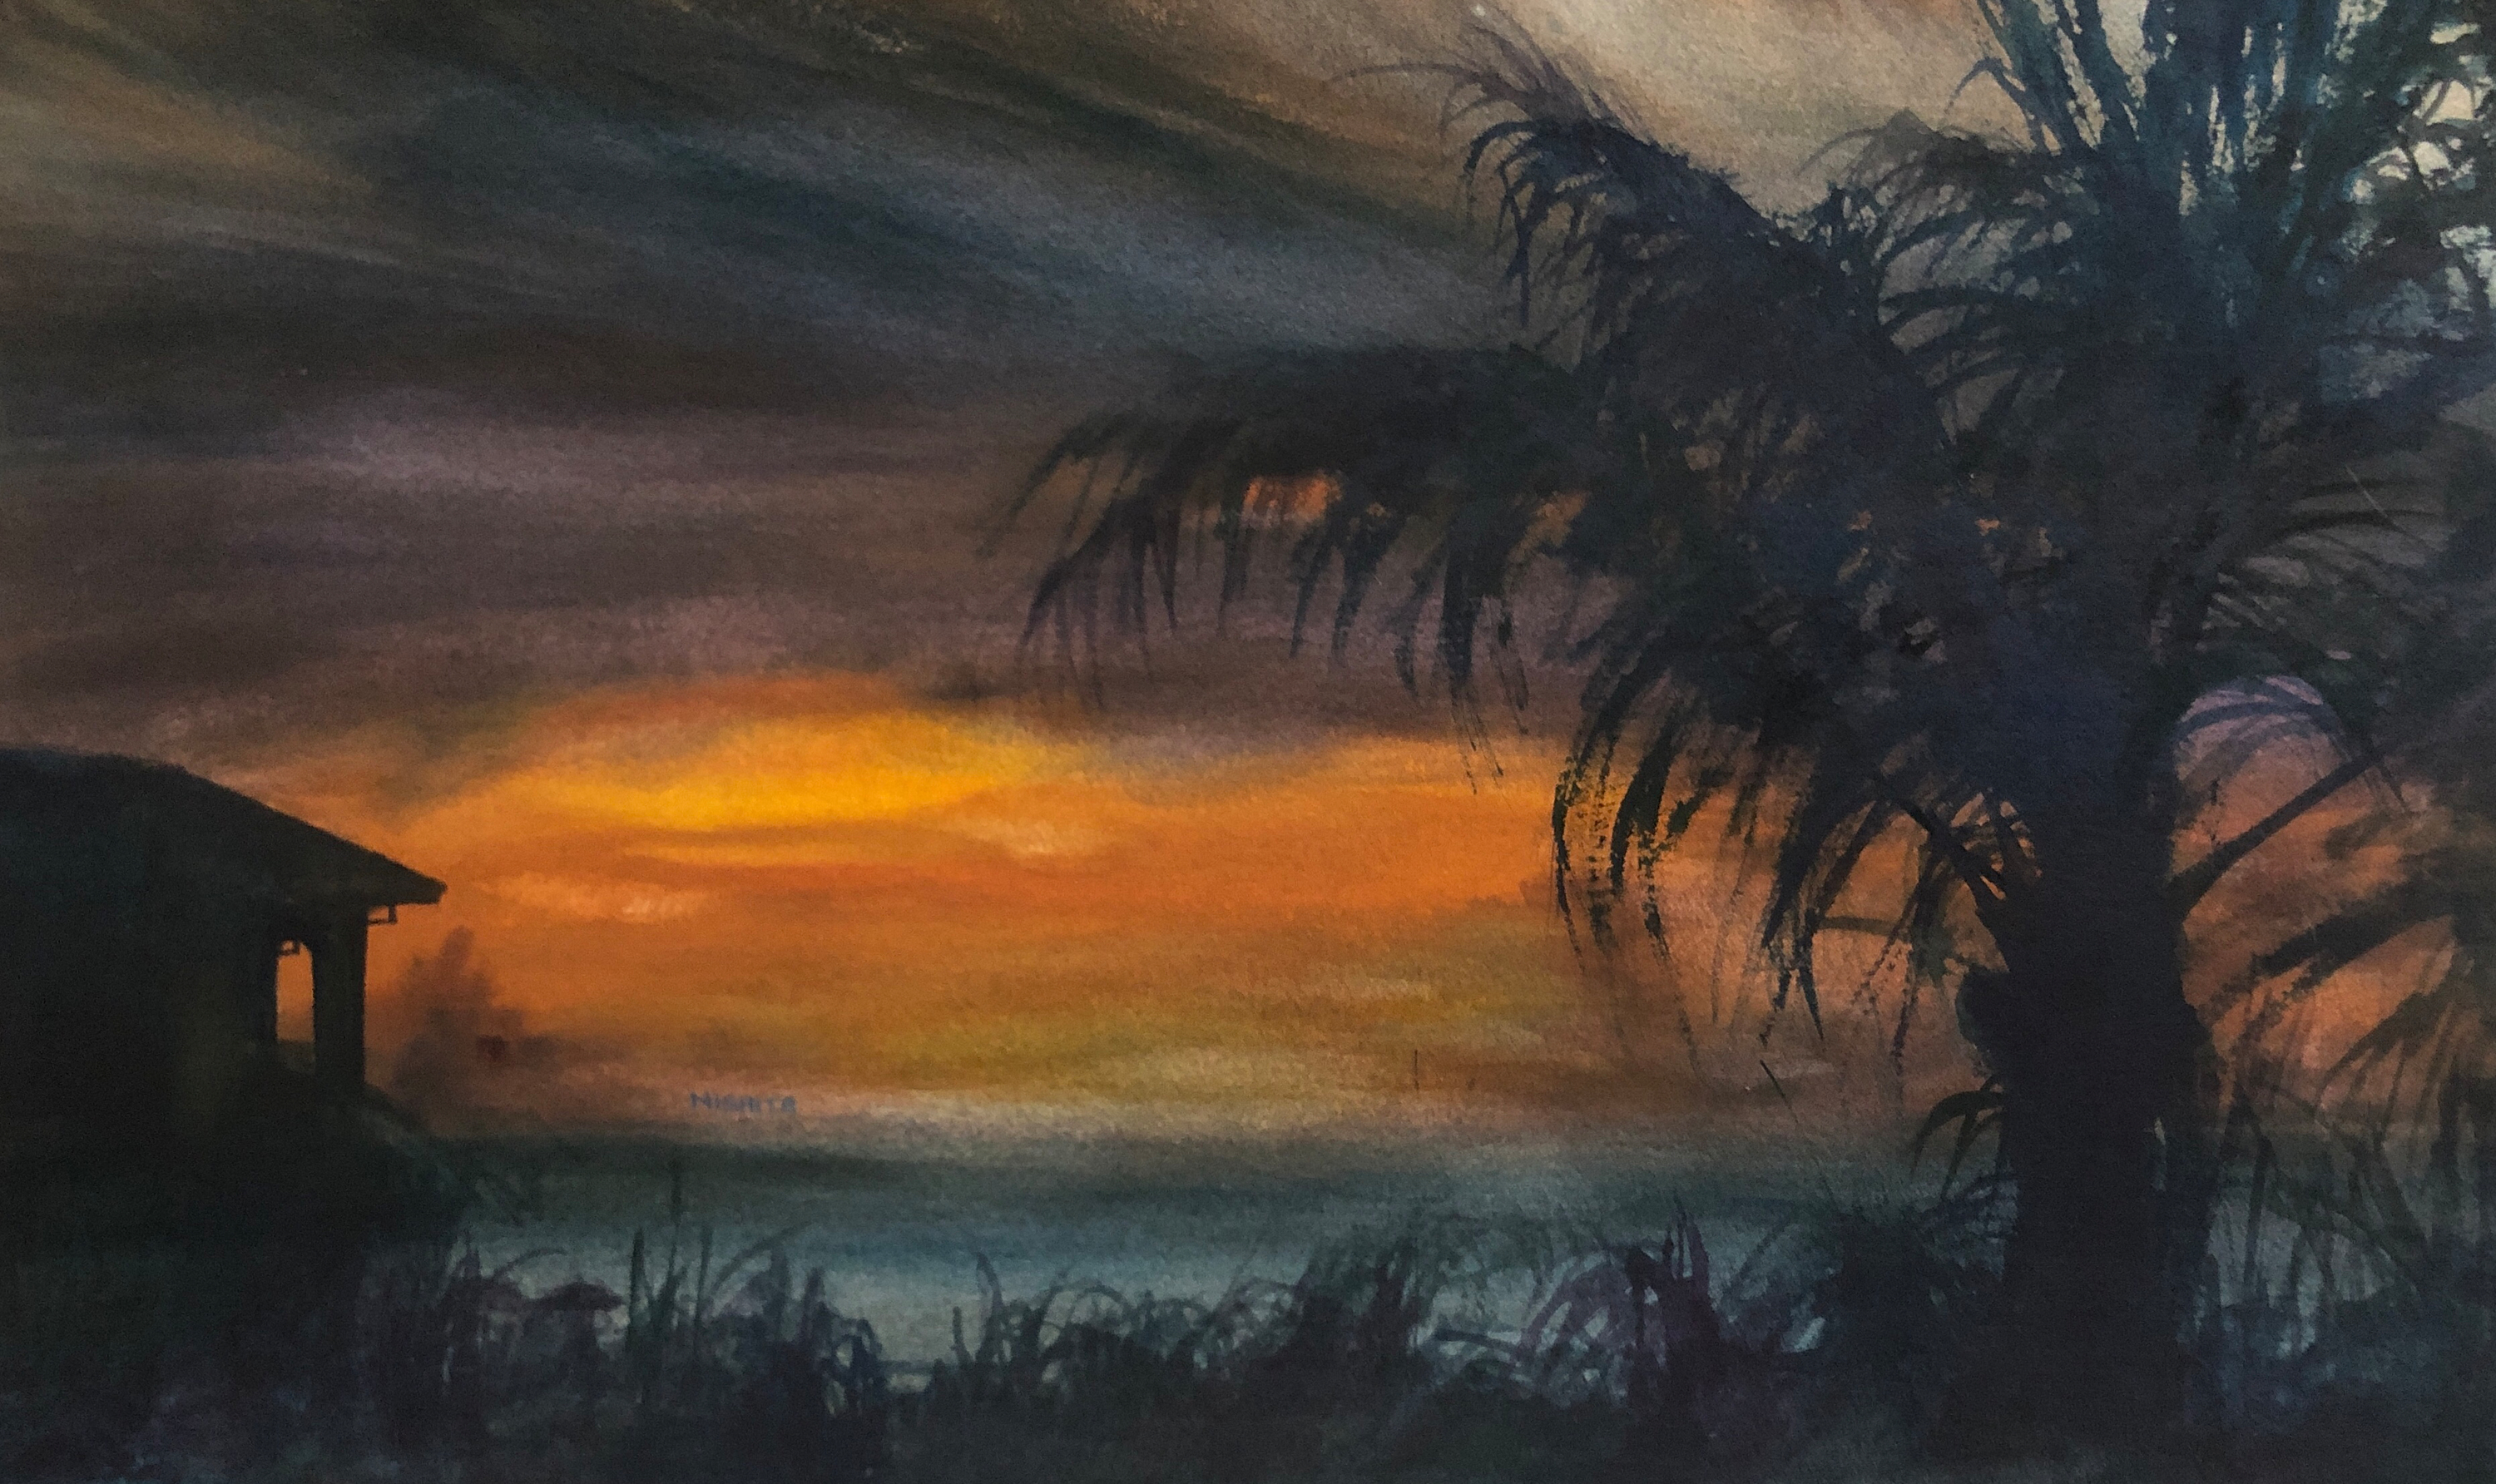 Sunset over turks and caikos watercolor 12x20 2018 plo9sn